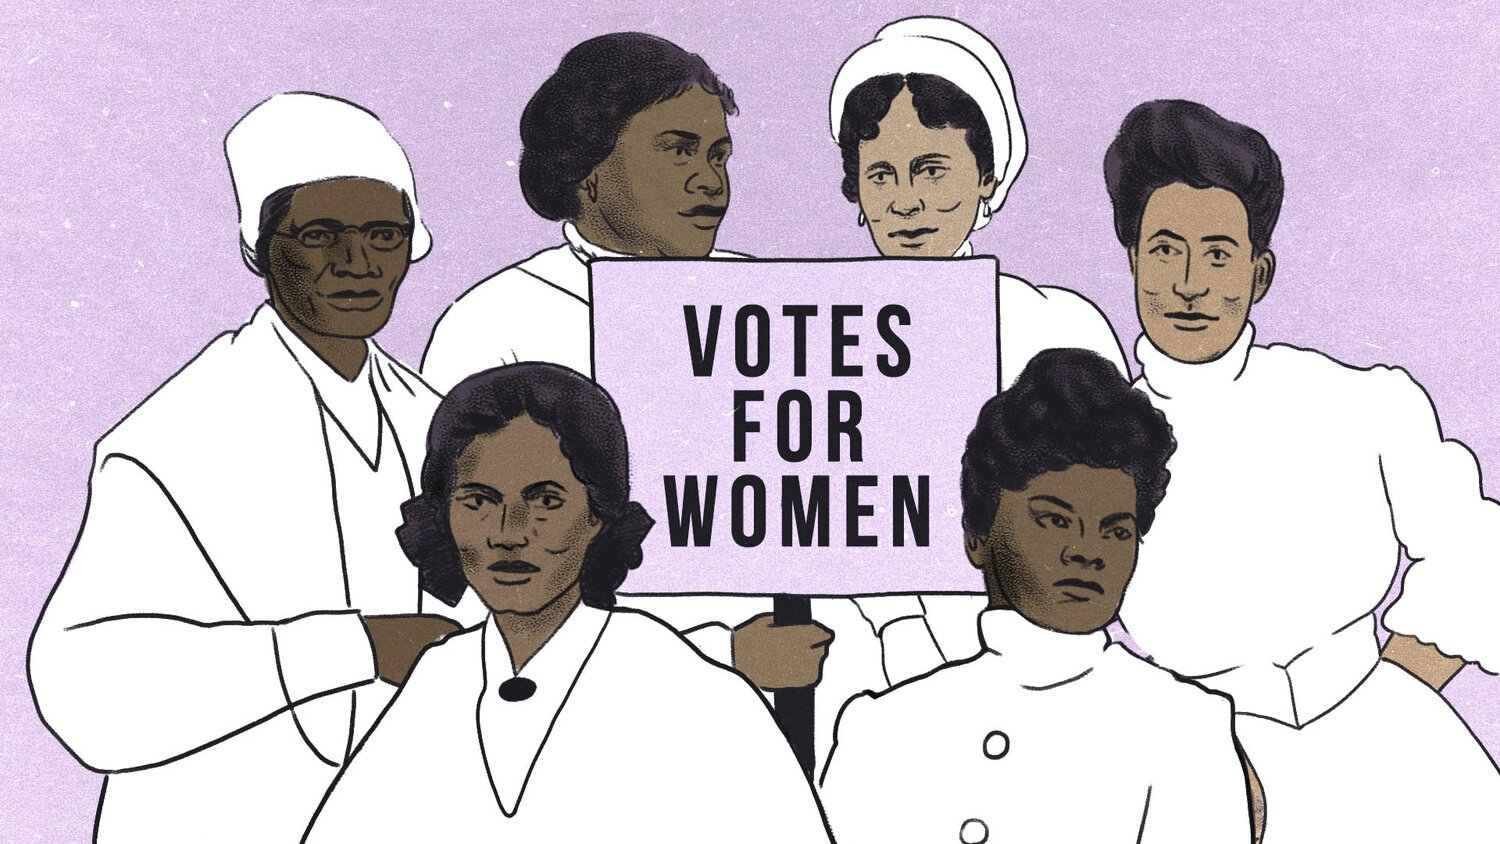 Votes for Women Illustration by Alex Gilbeaux